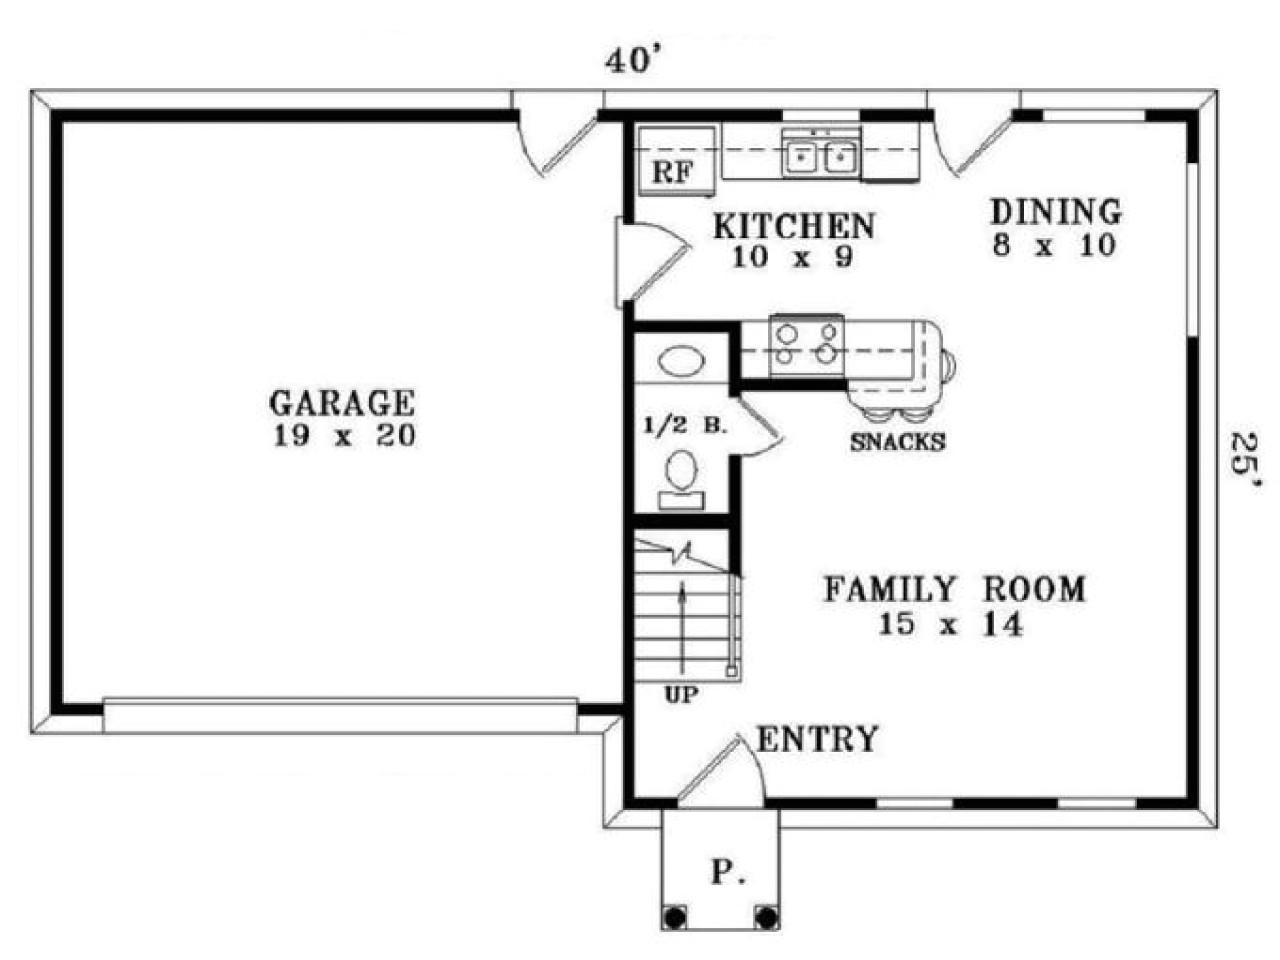 Simple Floor Plans for Homes Simple Small House Floor Plans 2 Bedrooms Simple Small